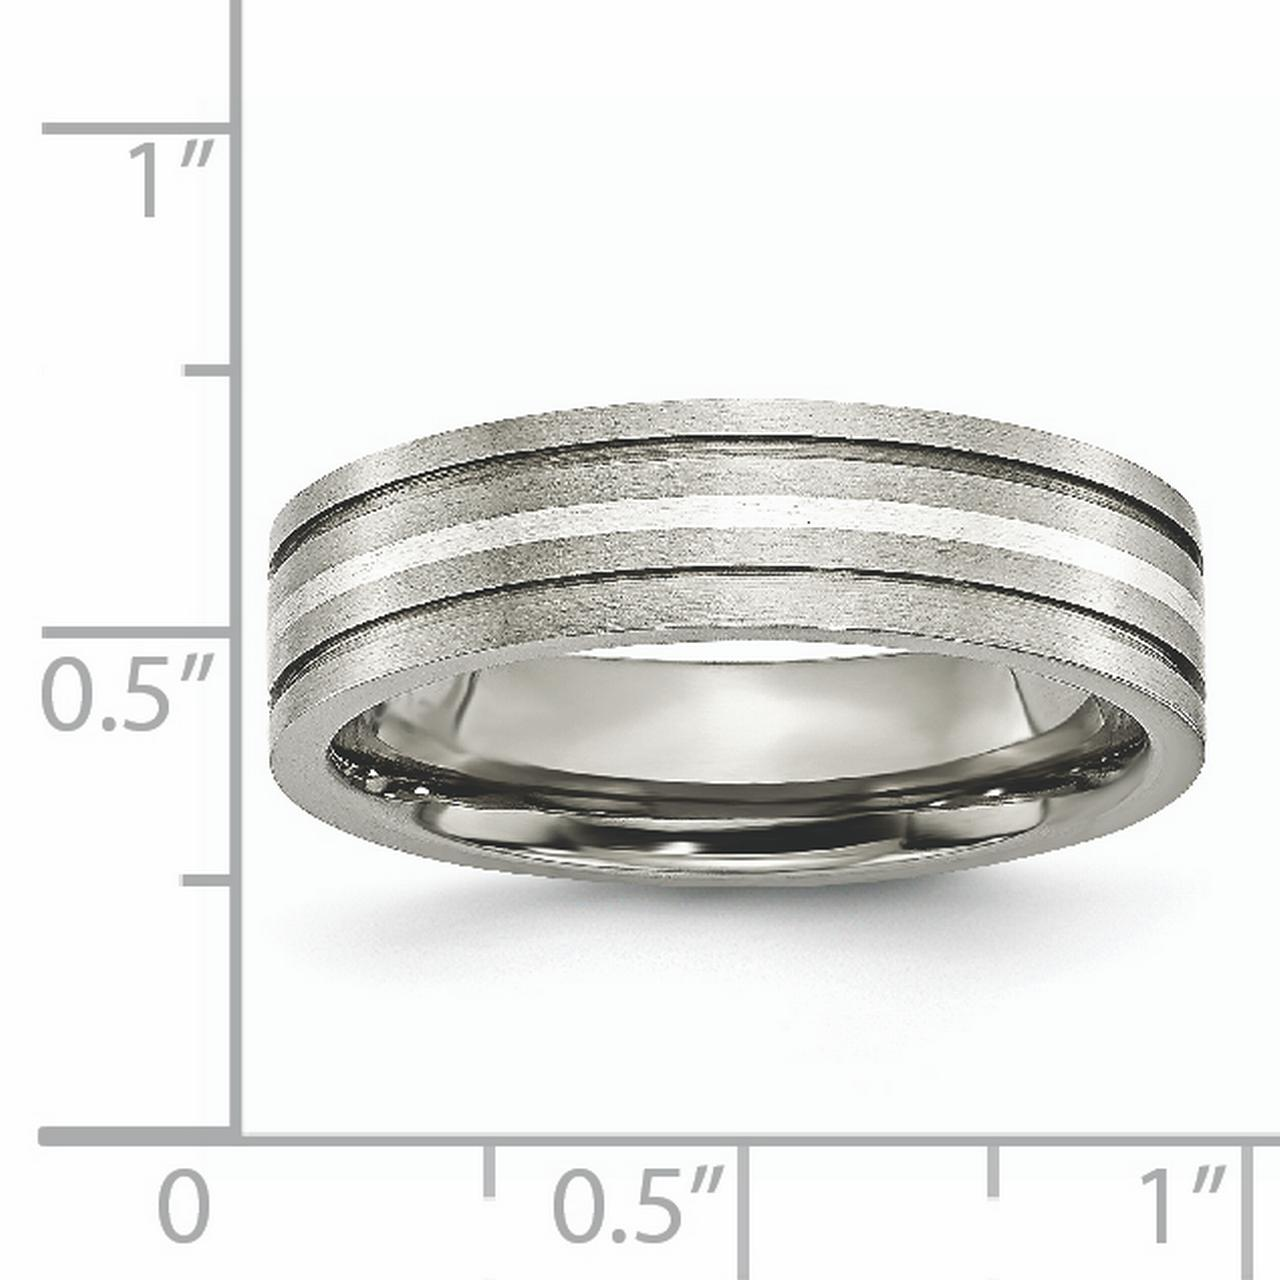 Titanium Grooved 925 Sterling Silver Inlay 6mm Brushed Wedding Ring Band Size 6.00 Precious Metal Fine Jewelry Gifts For Women For Her - image 2 de 10